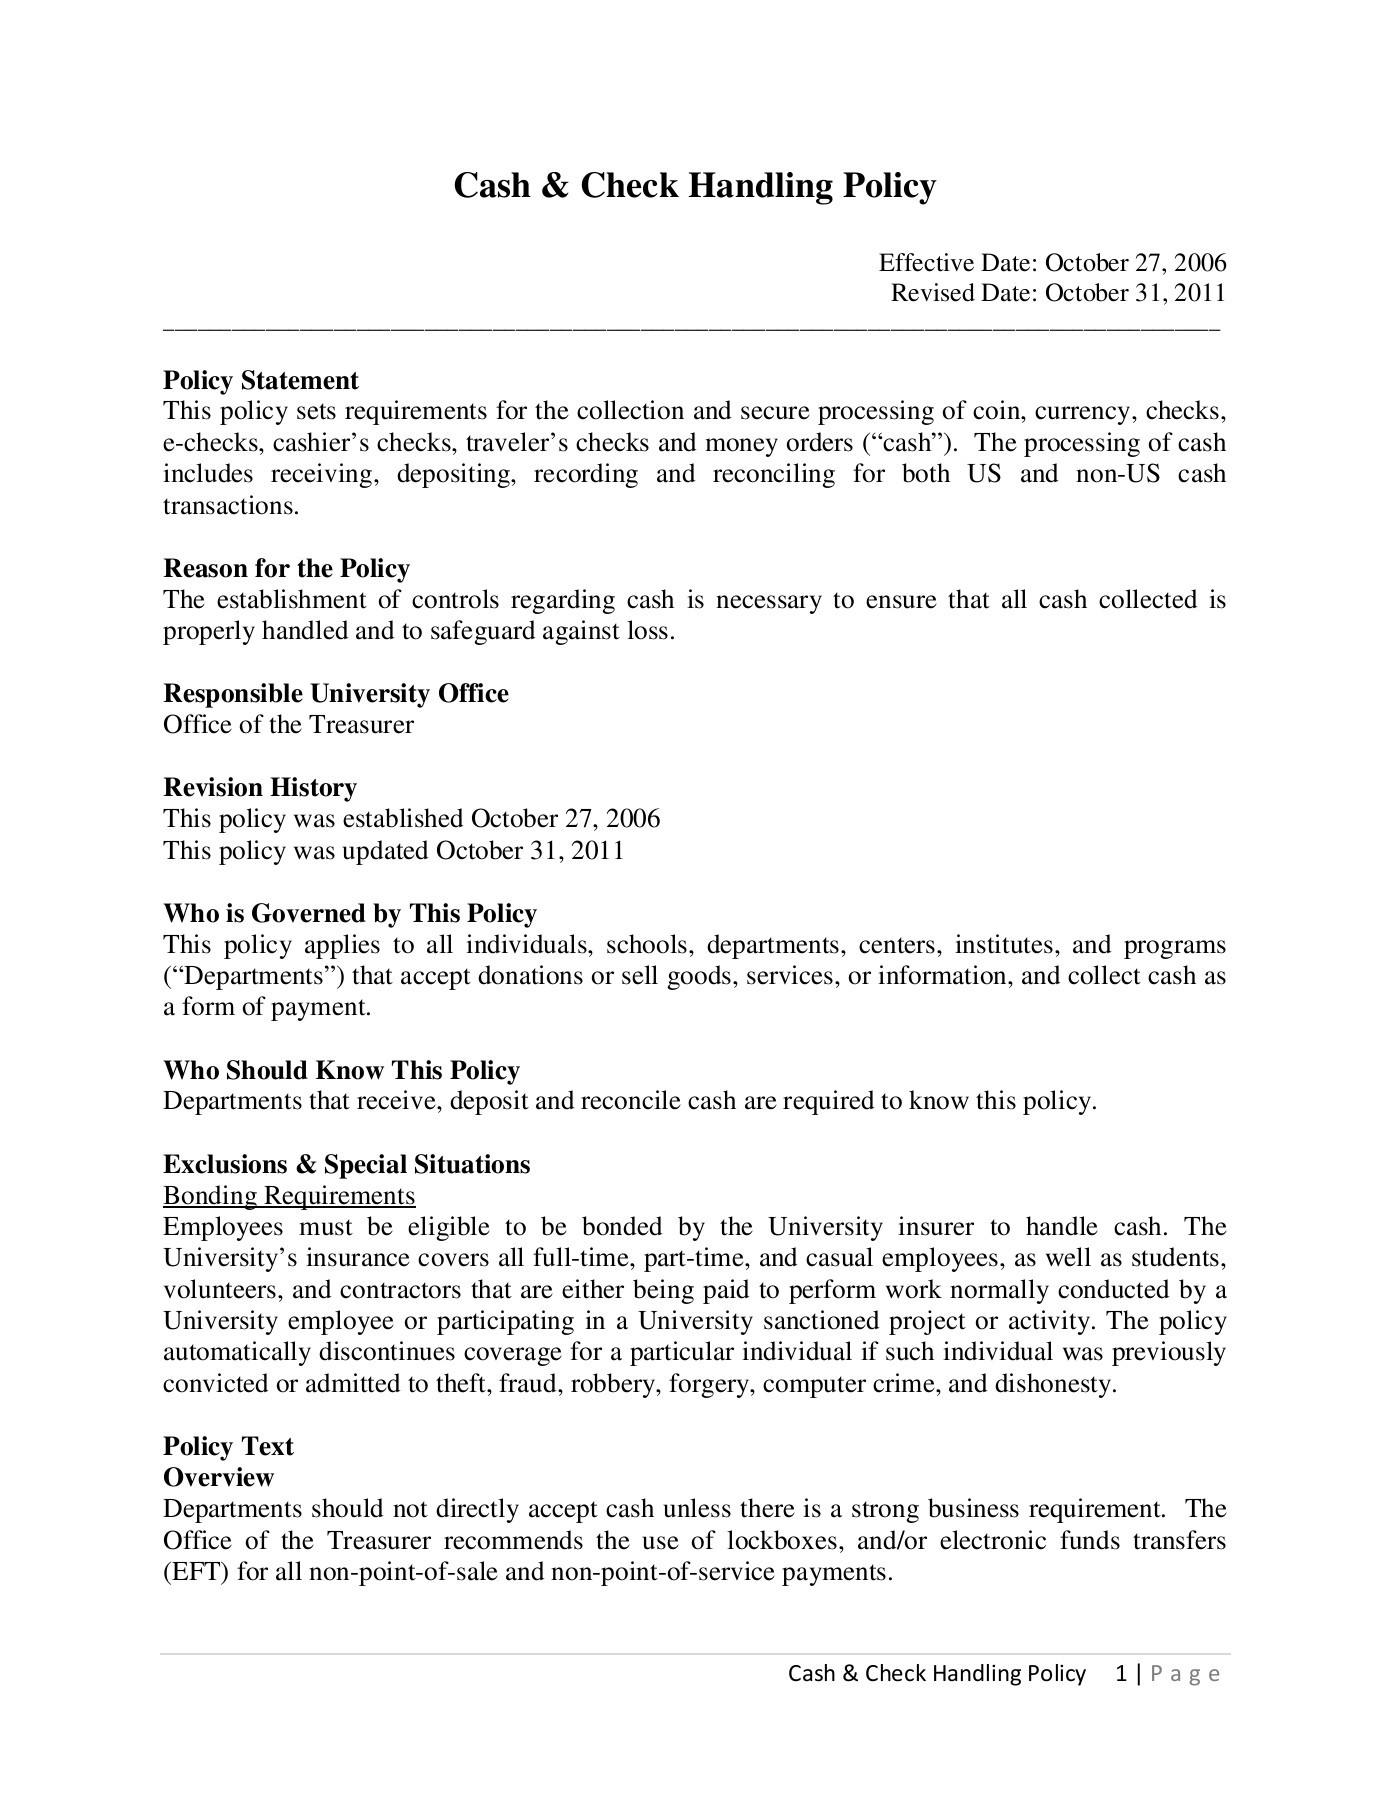 Cash Point 2011 : point, Check, Handling, Policy, Final, 10-31-11